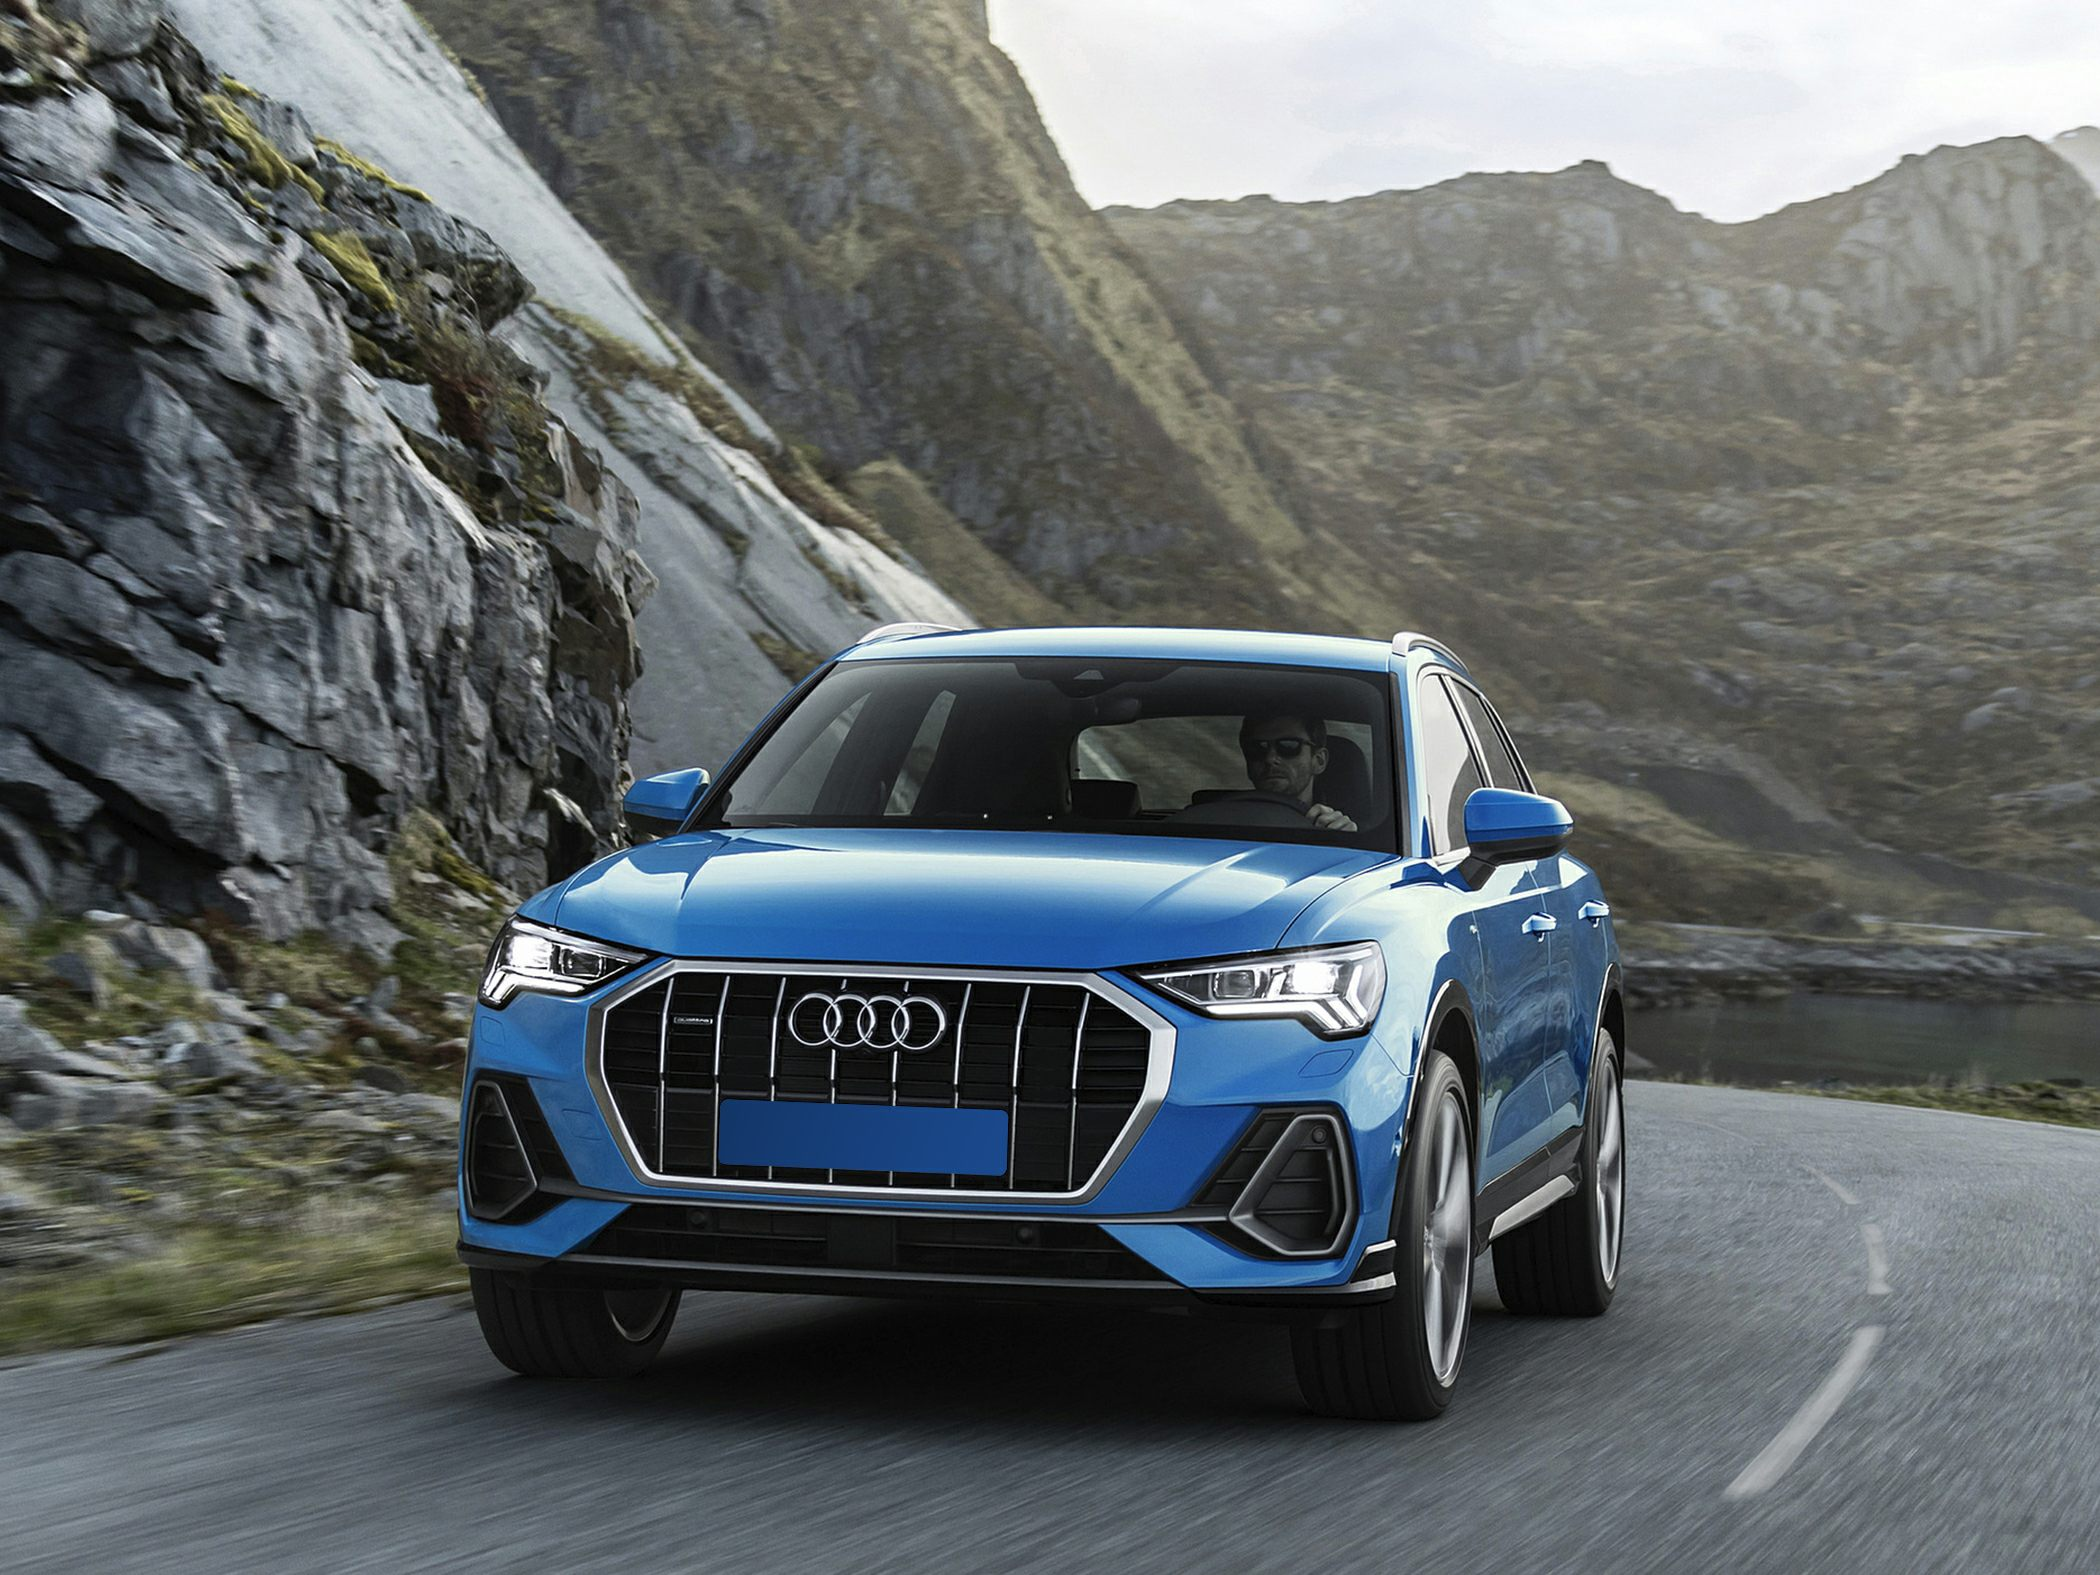 2014 Audi RS Q3 breaks out ahead of Geneva reveal | Autoblog